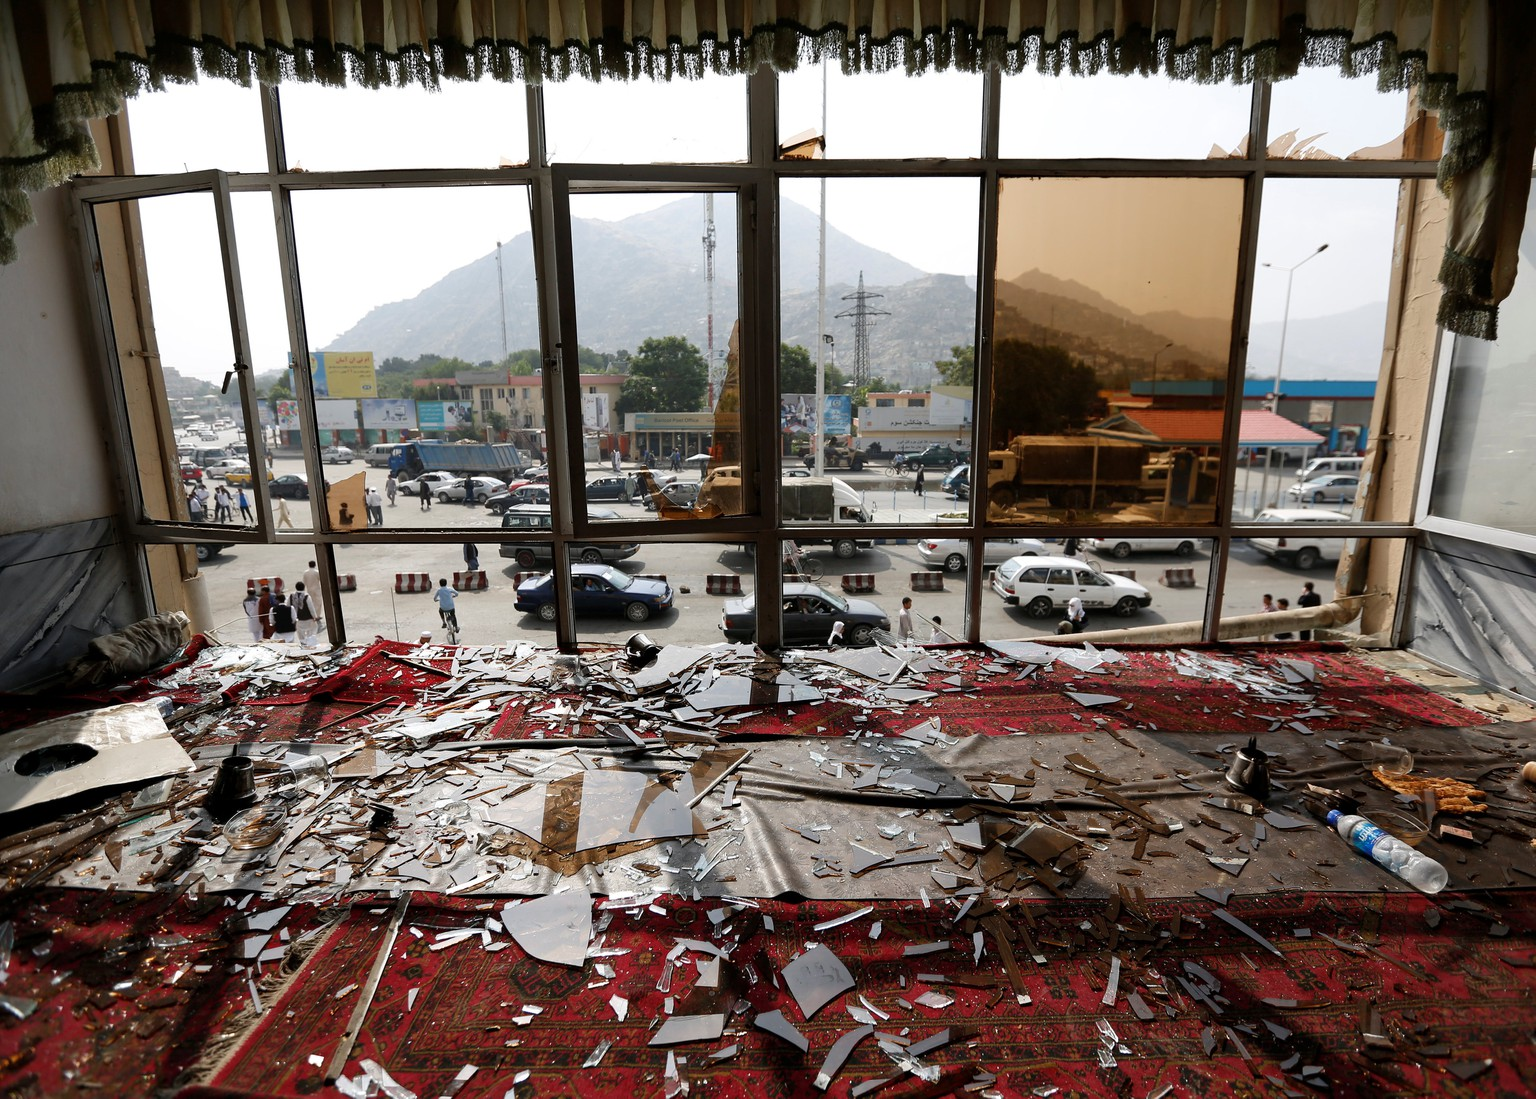 Broken glass and debris are seen inside a resturant a day after a suicide attack in Kabul, Afghanistan July 24, 2016. REUTERS/Mohammad Ismail      TPX IMAGES OF THE DAY